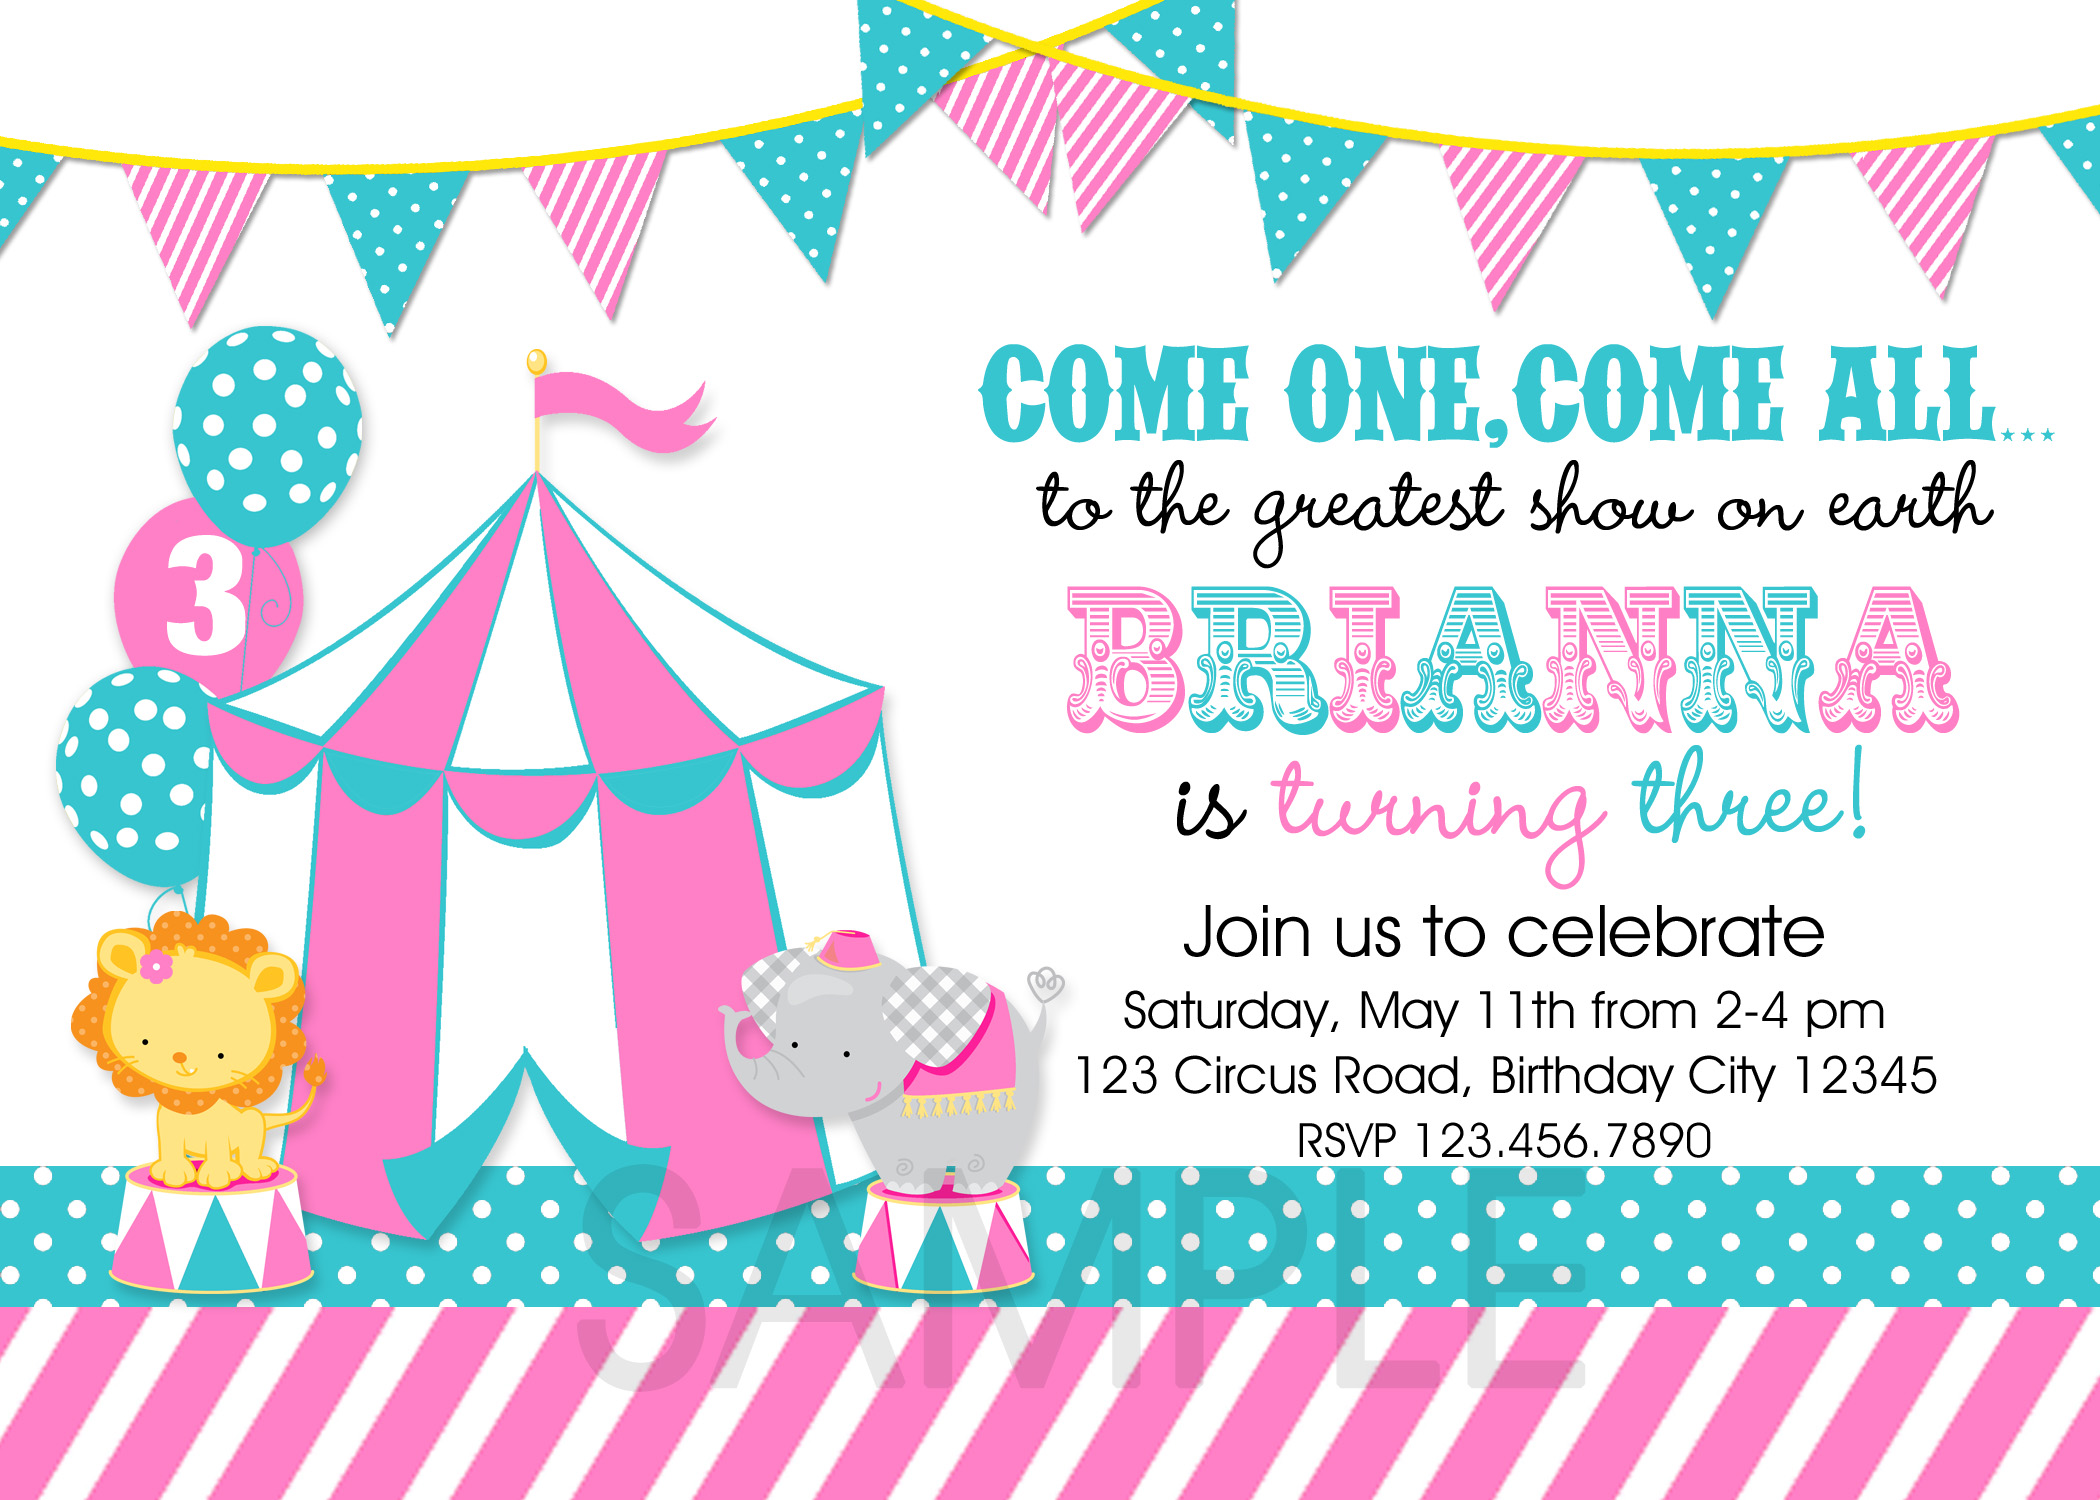 Printable Birthday Party Invitations Circus Carnival Theme - Birthday invitation cards circus